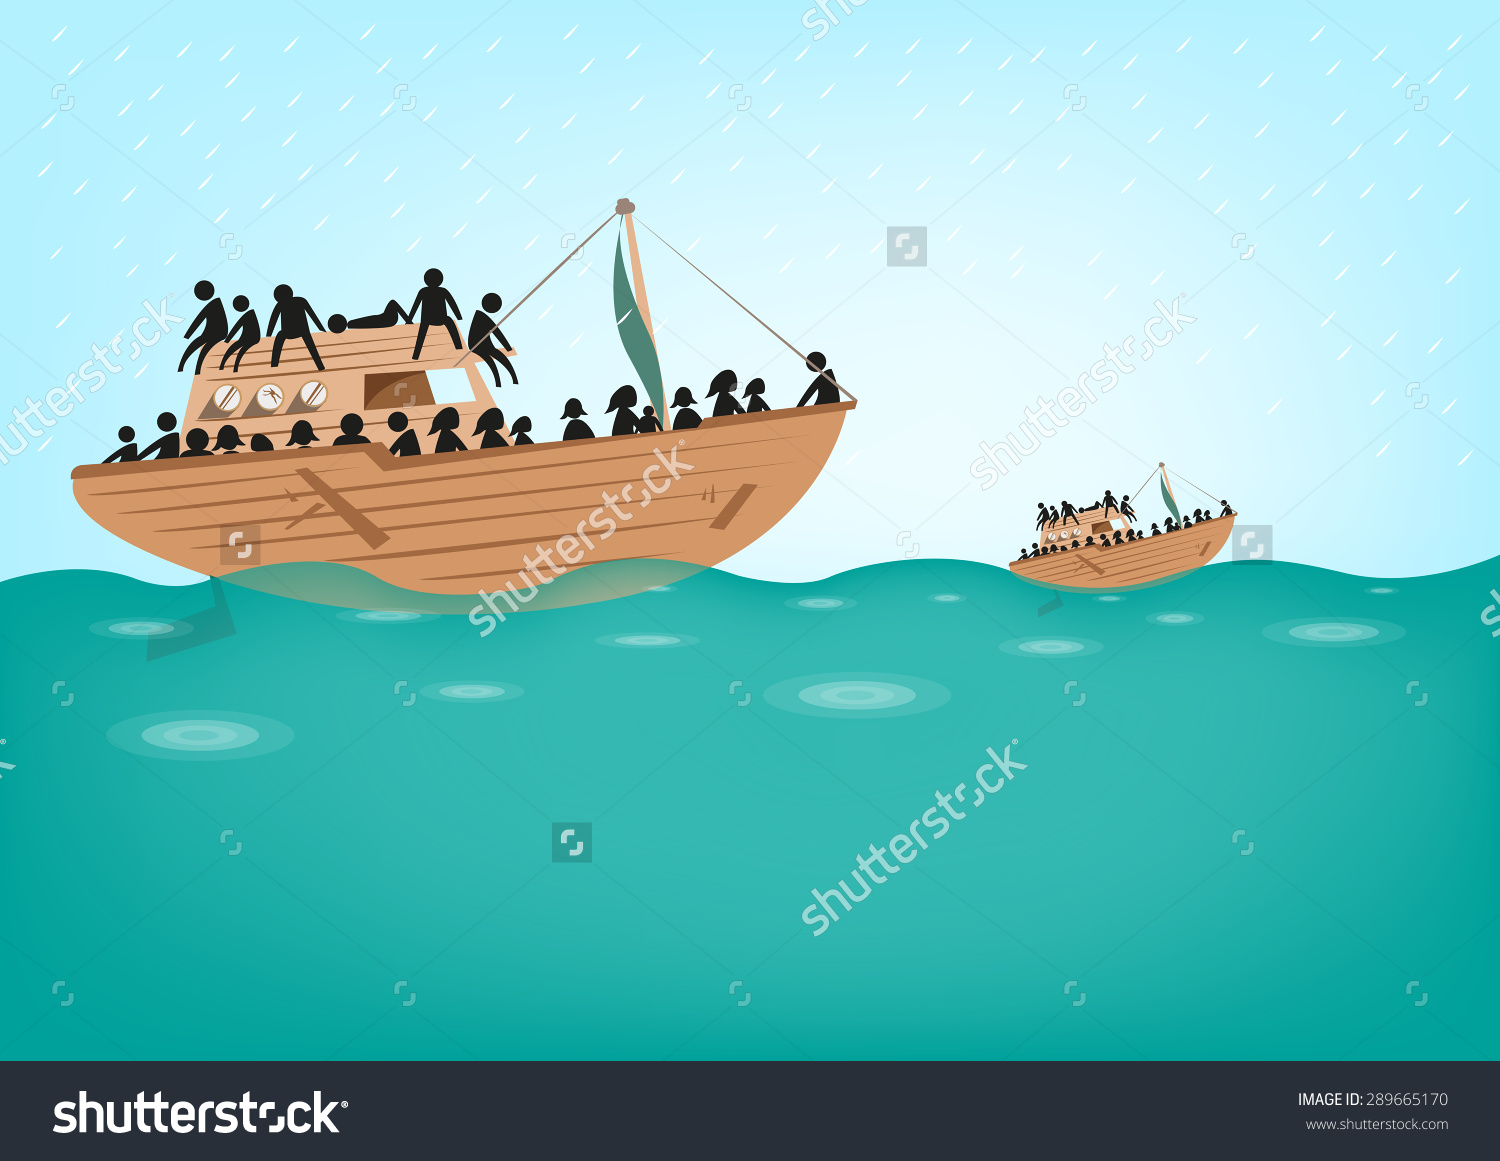 collection of refugee. Boating clipart watercraft